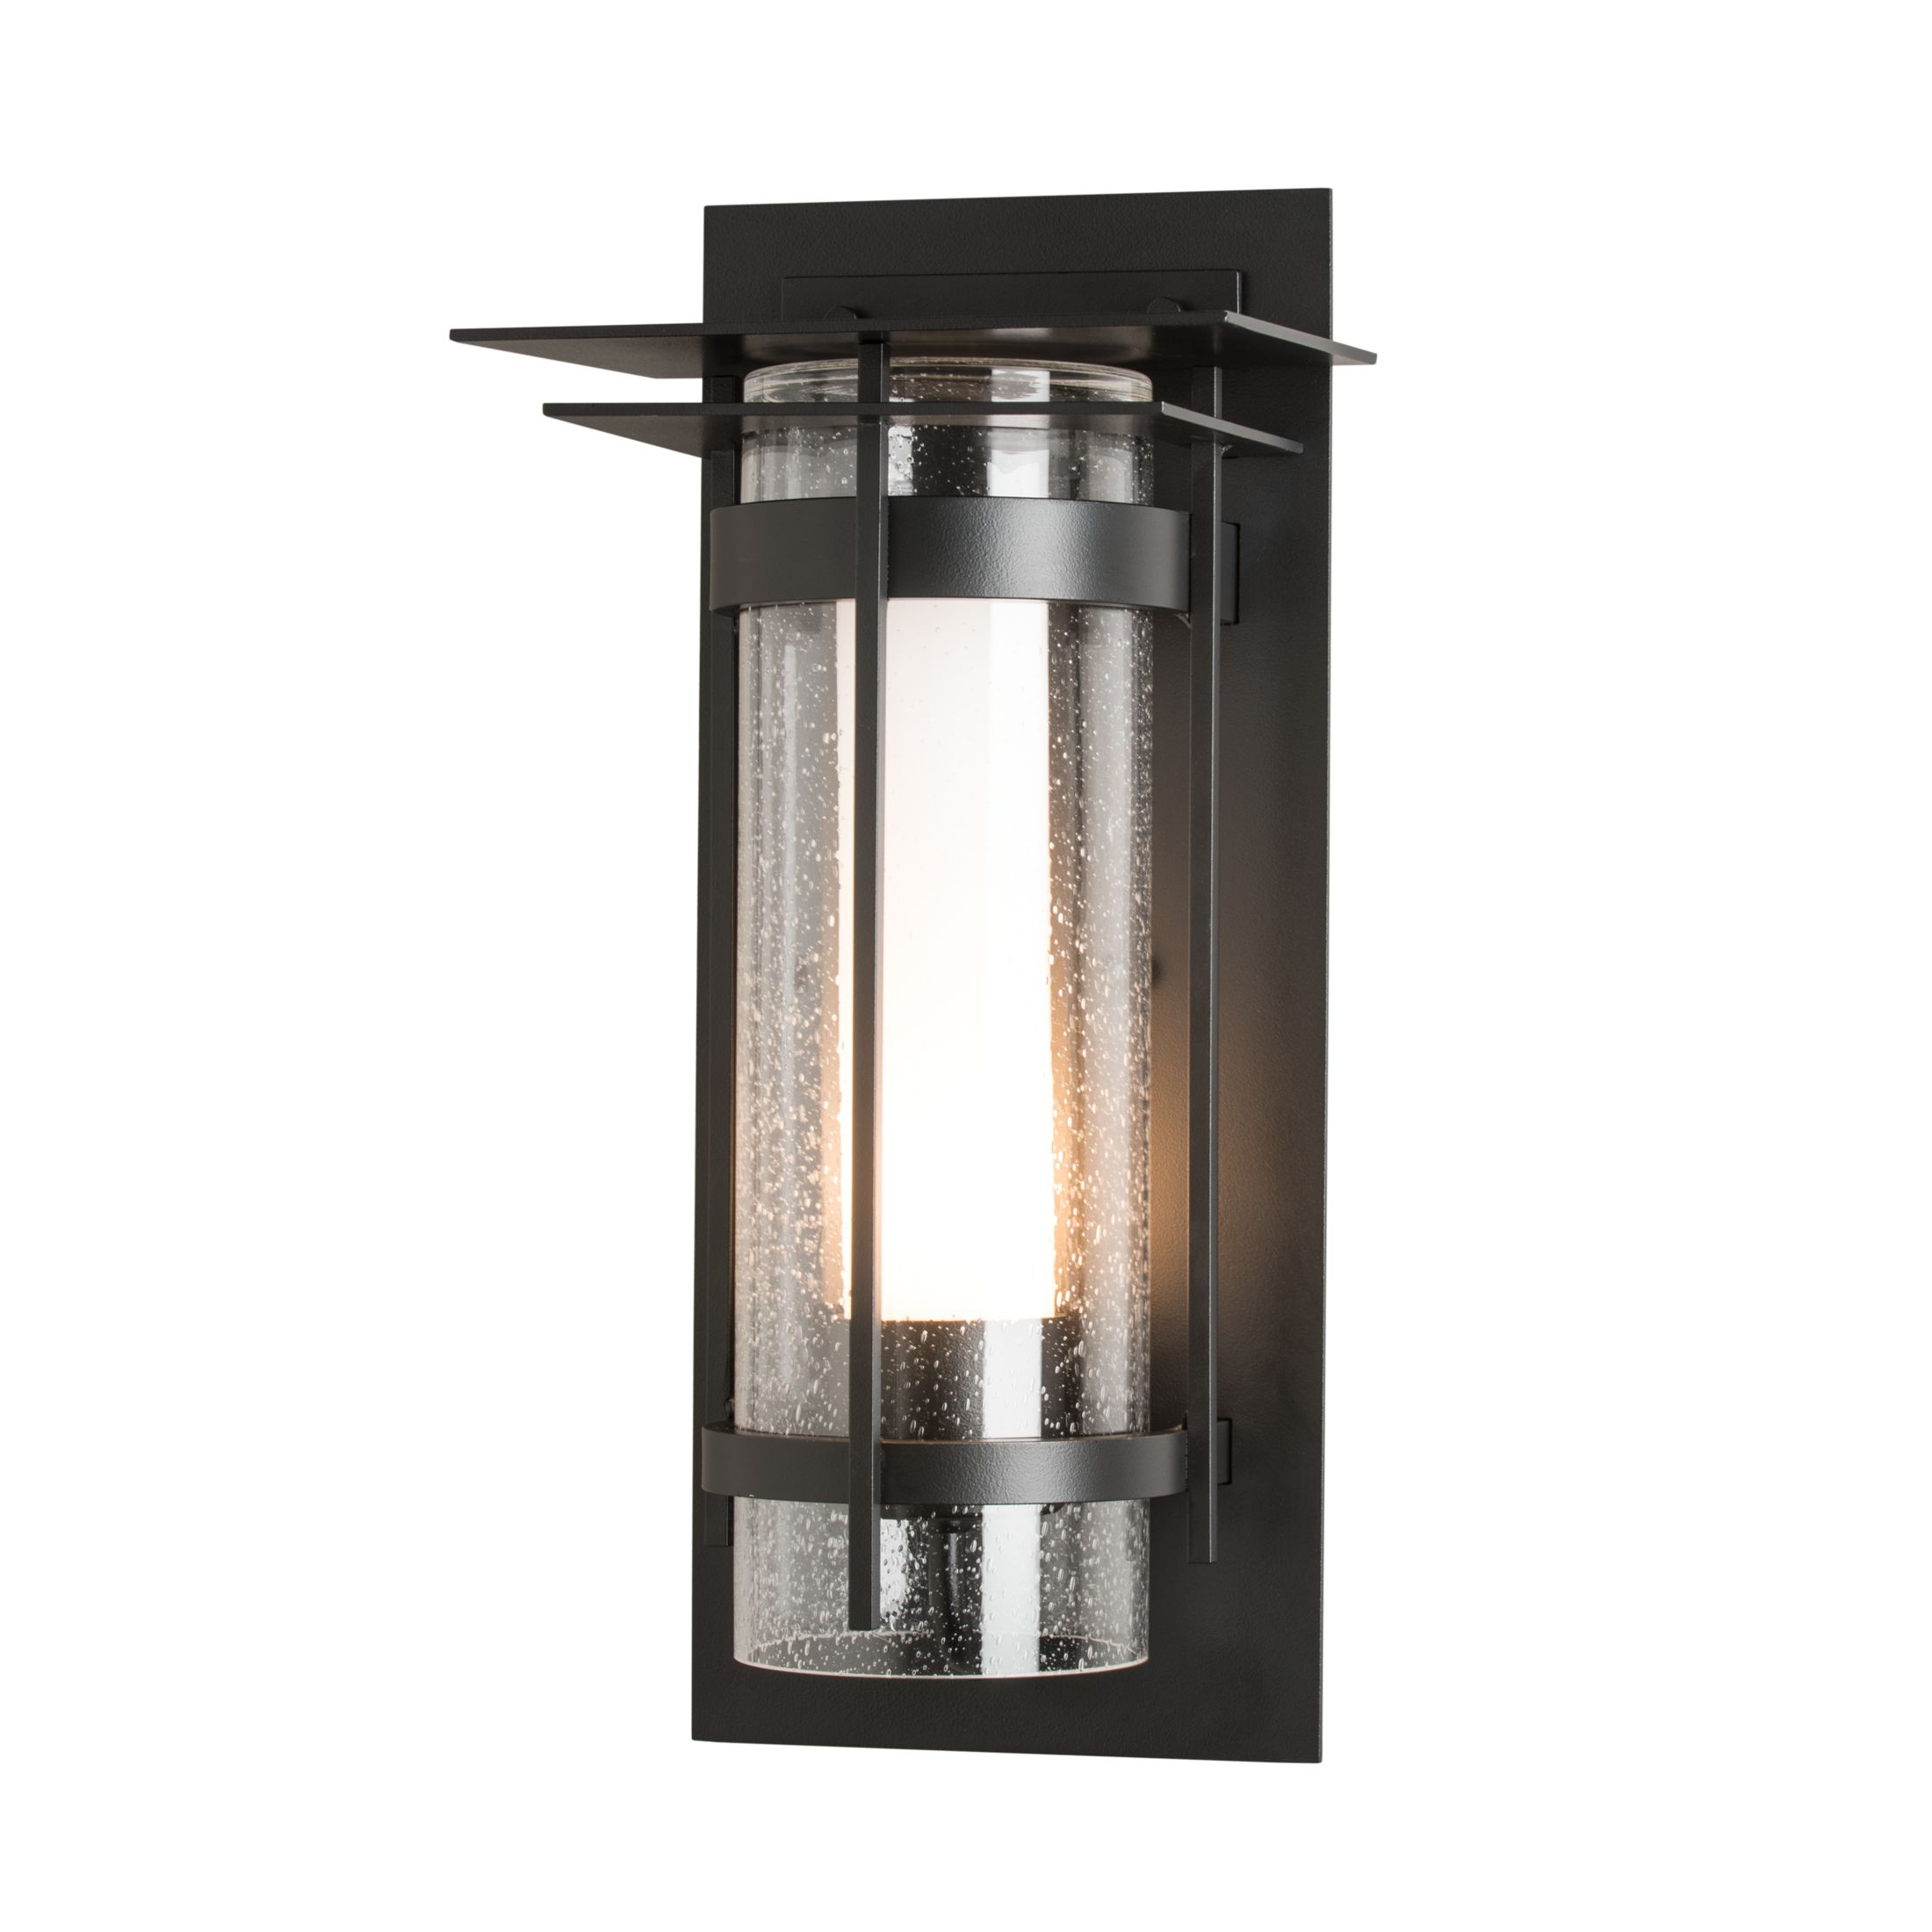 Thumbnail for Banded Seeded Glass with Top Plate Outdoor Sconce